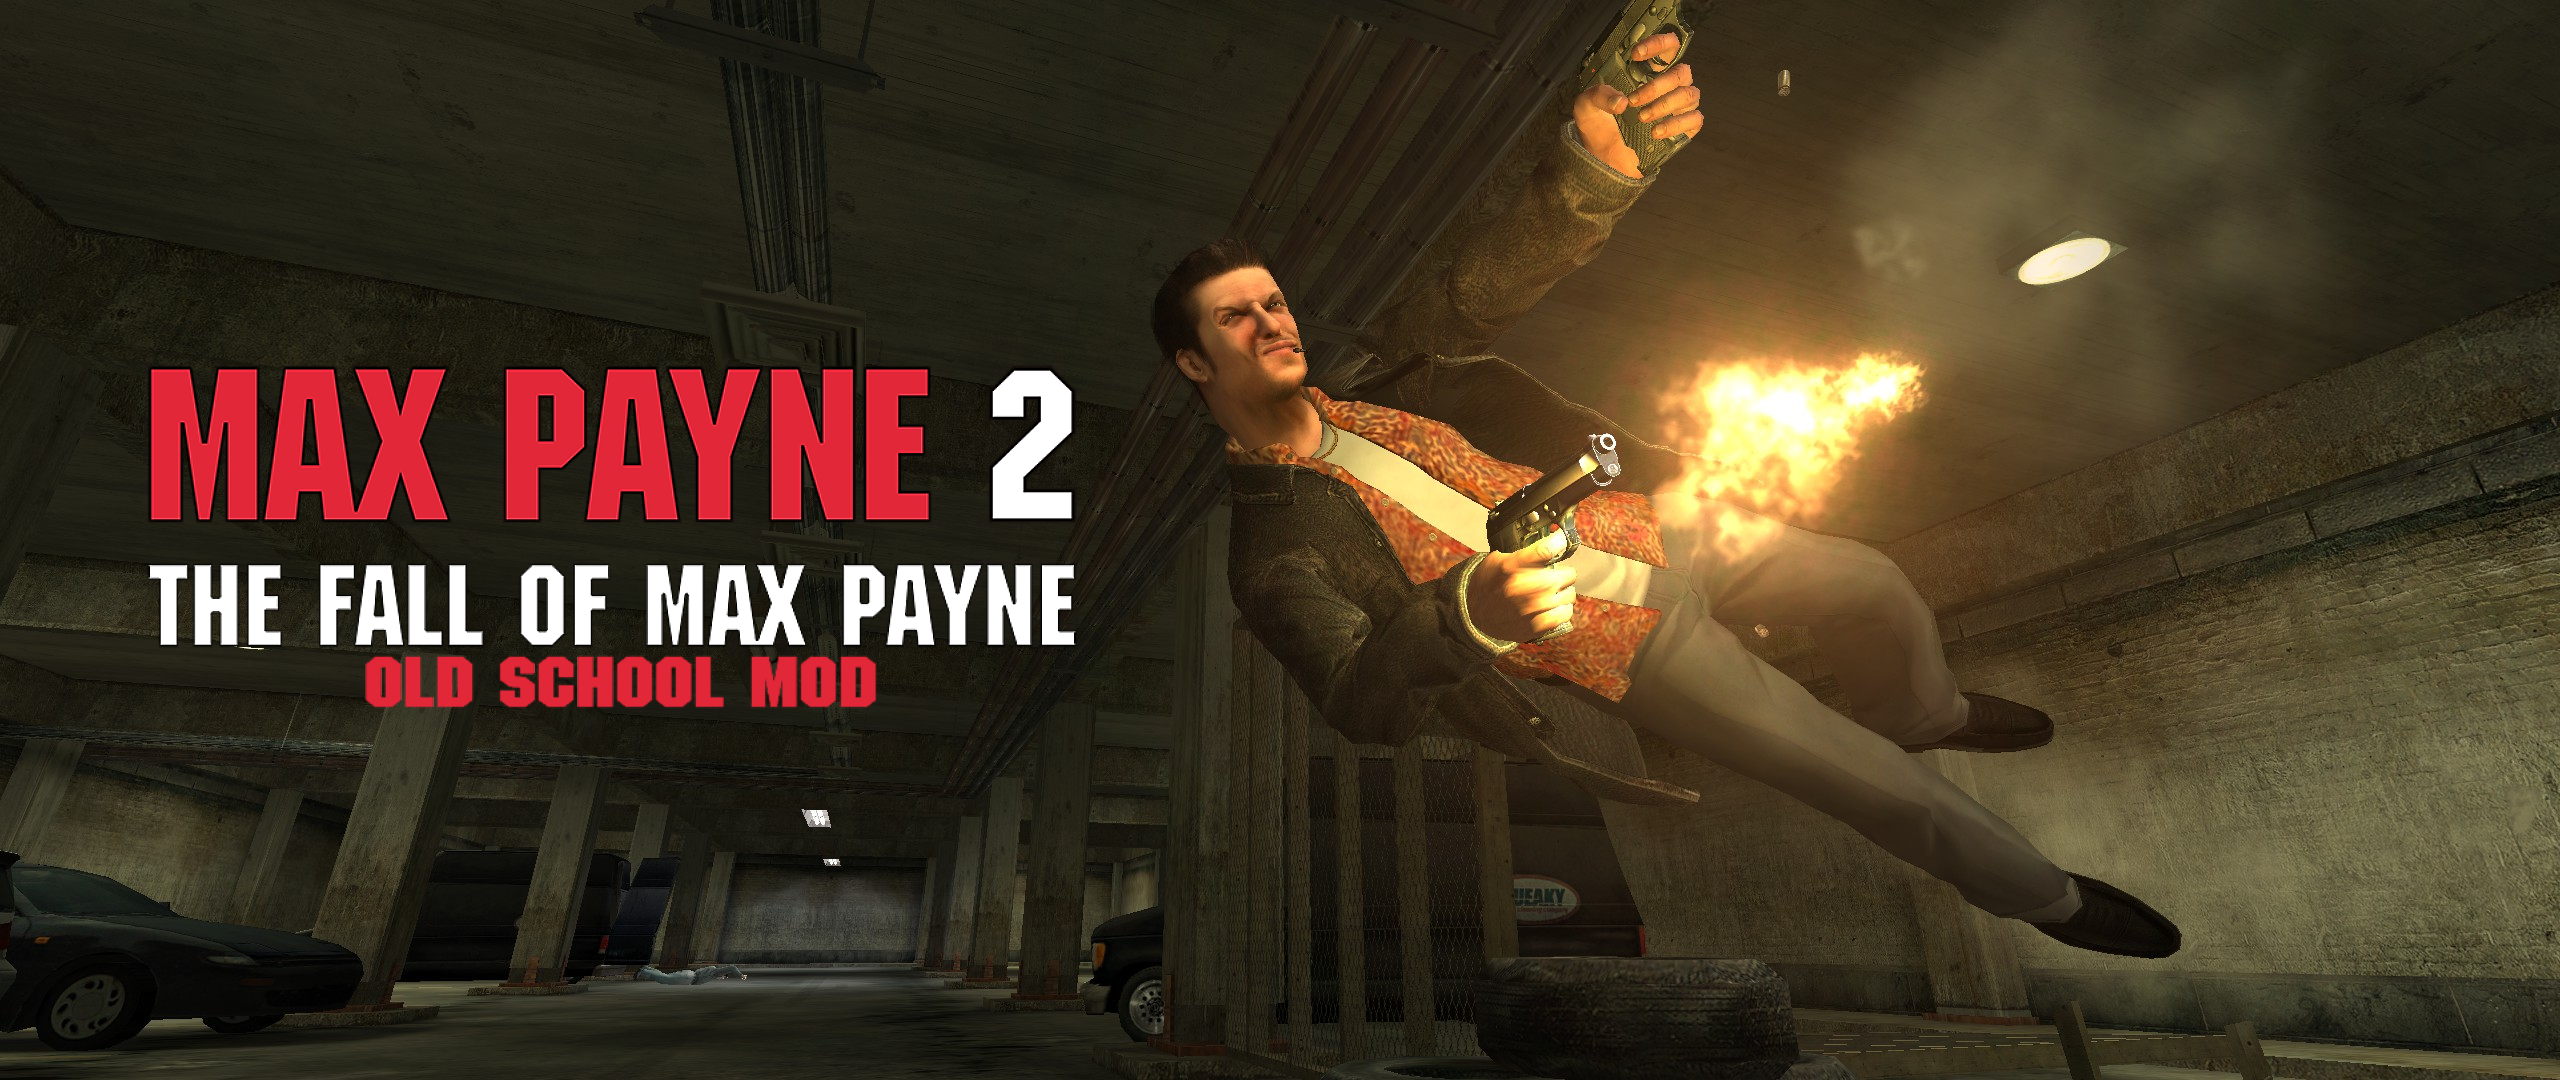 Old Shool Mod Is Coming Soon News Max Payne 2 Mod Db